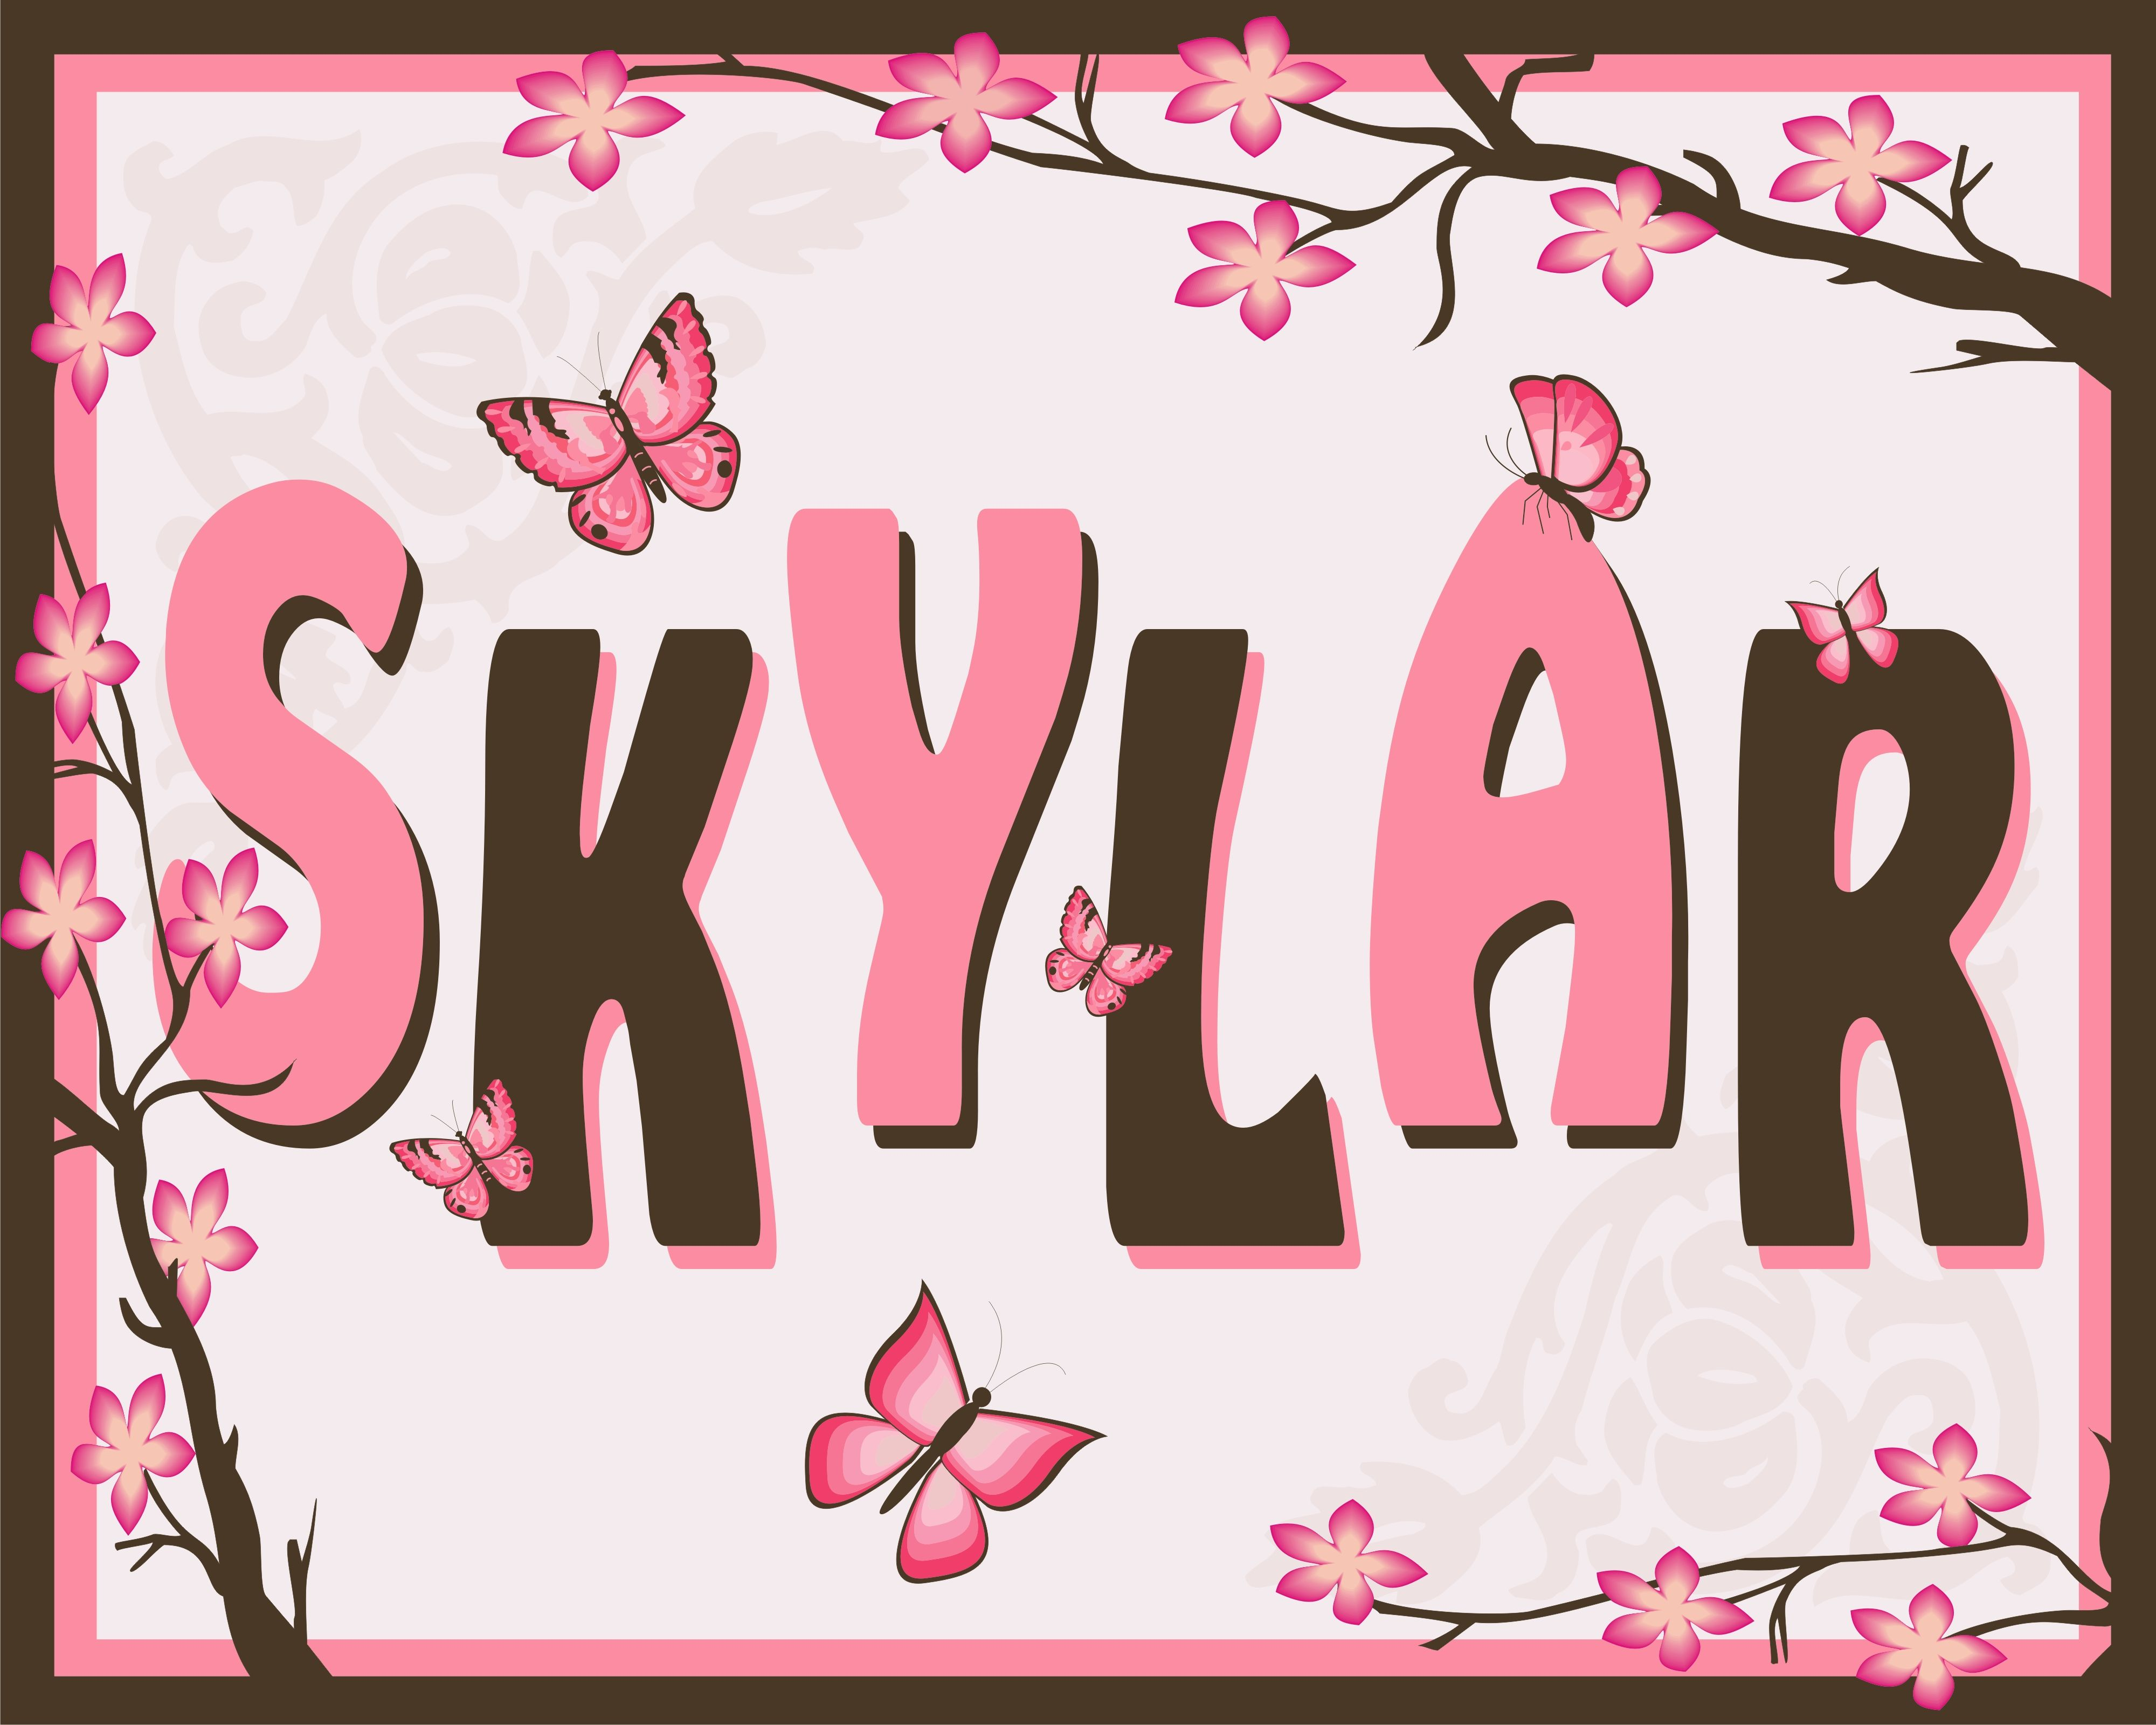 27 best skylar images on pinterest baby gifts baby girl names skylar name art created in coreldraw name meaningsbaby negle Choice Image